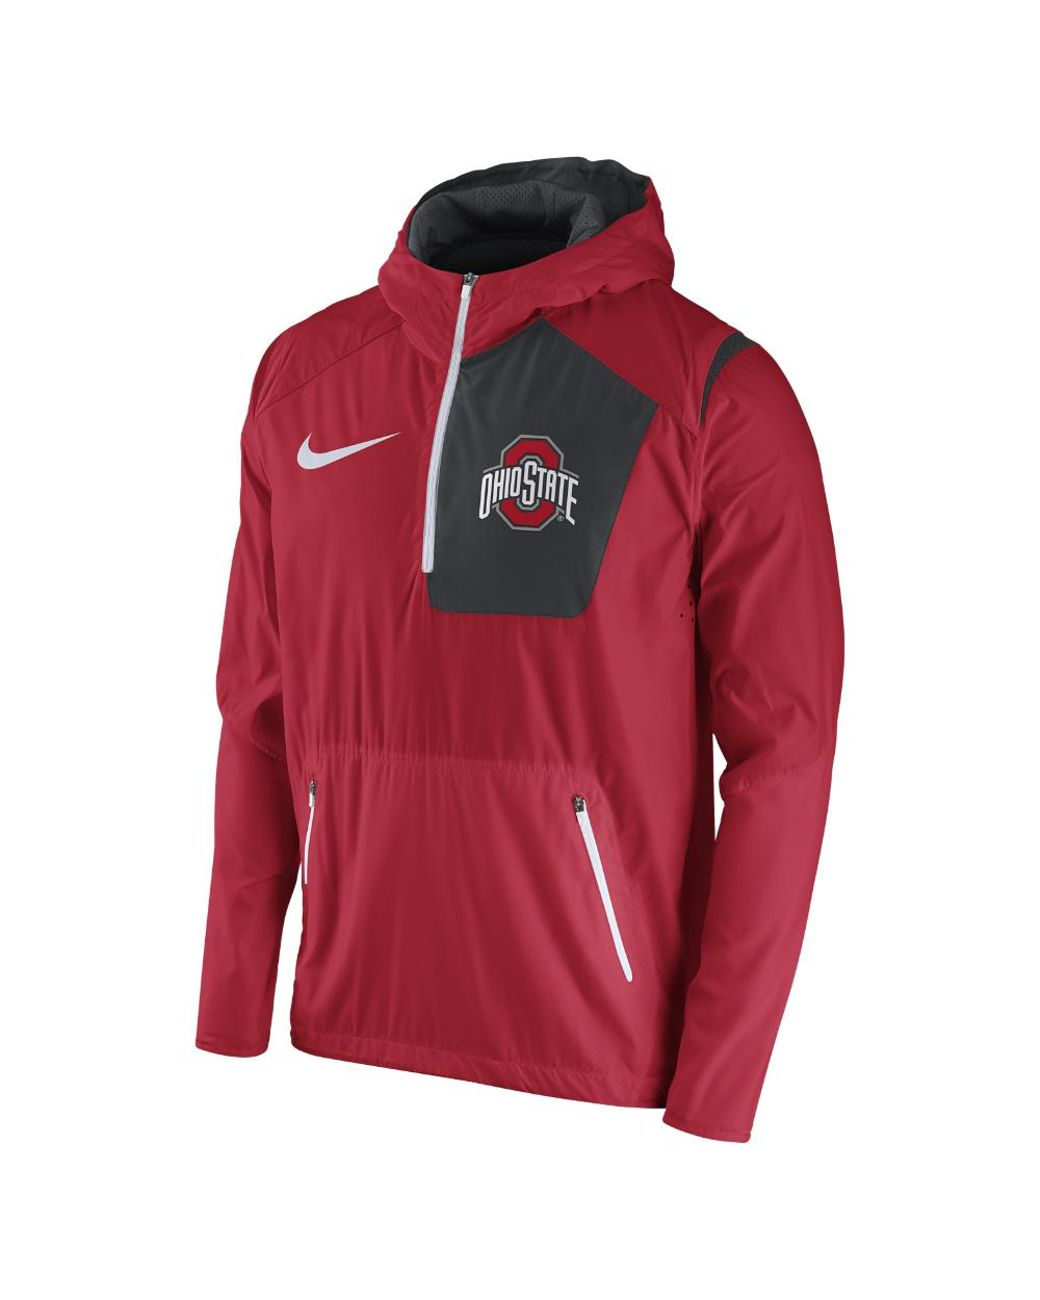 ade9f75e000 Lyst - Nike College Vapor Fly Rush (ohio State) Men s Football Jacket in  Red for Men - Save 20%